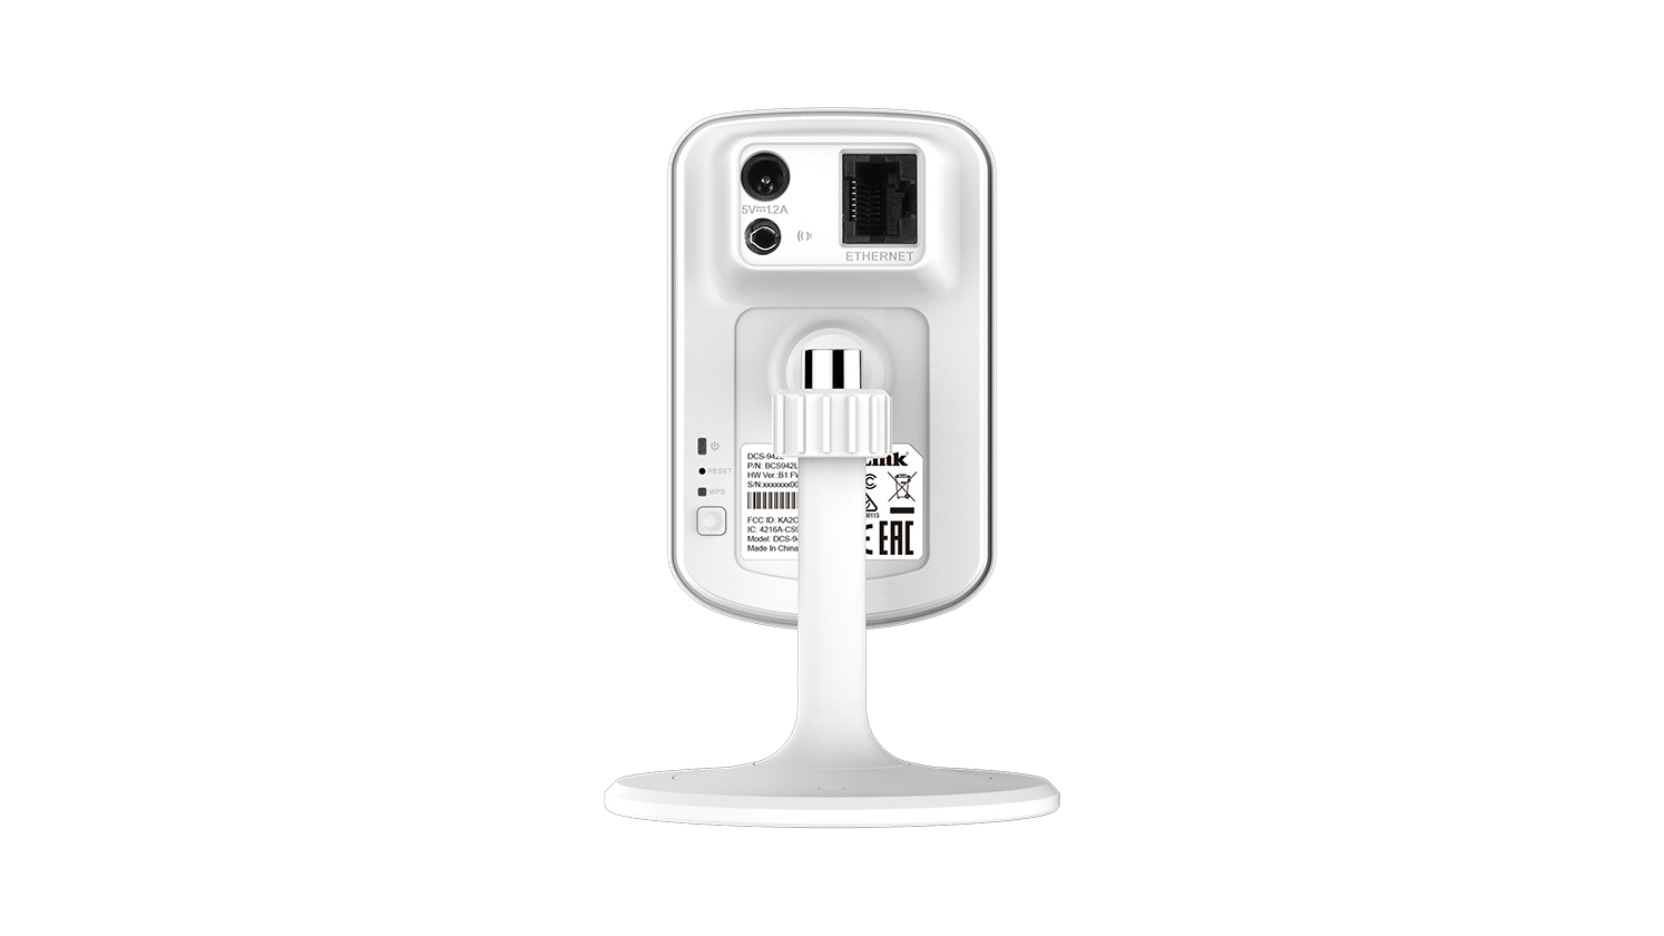 D-Link DCS-942L Driver for Windows Mac